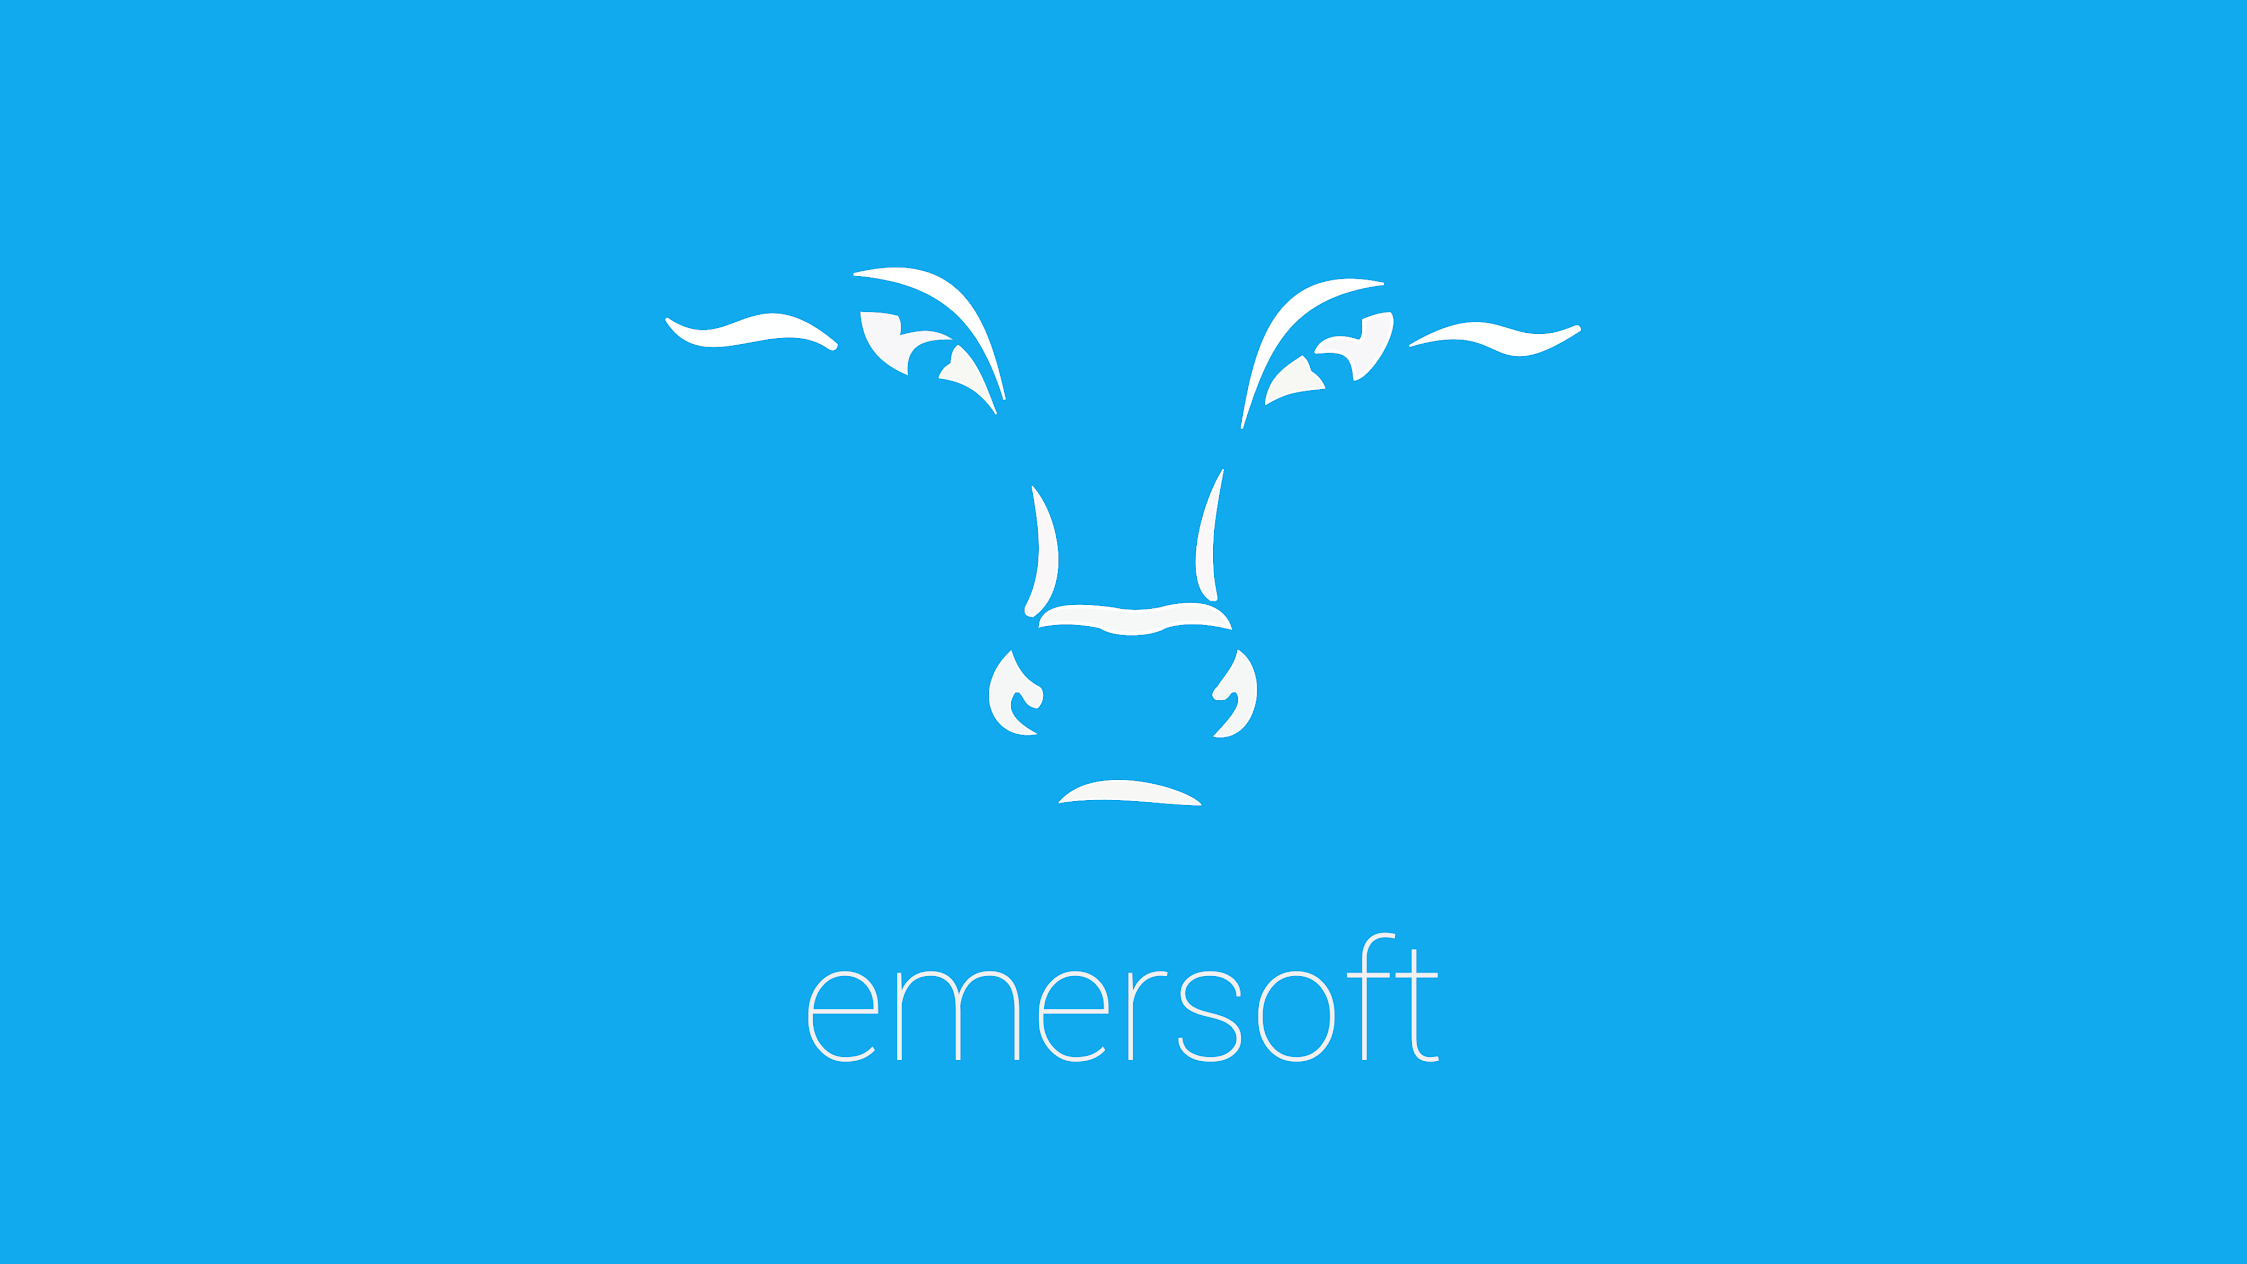 emersoft